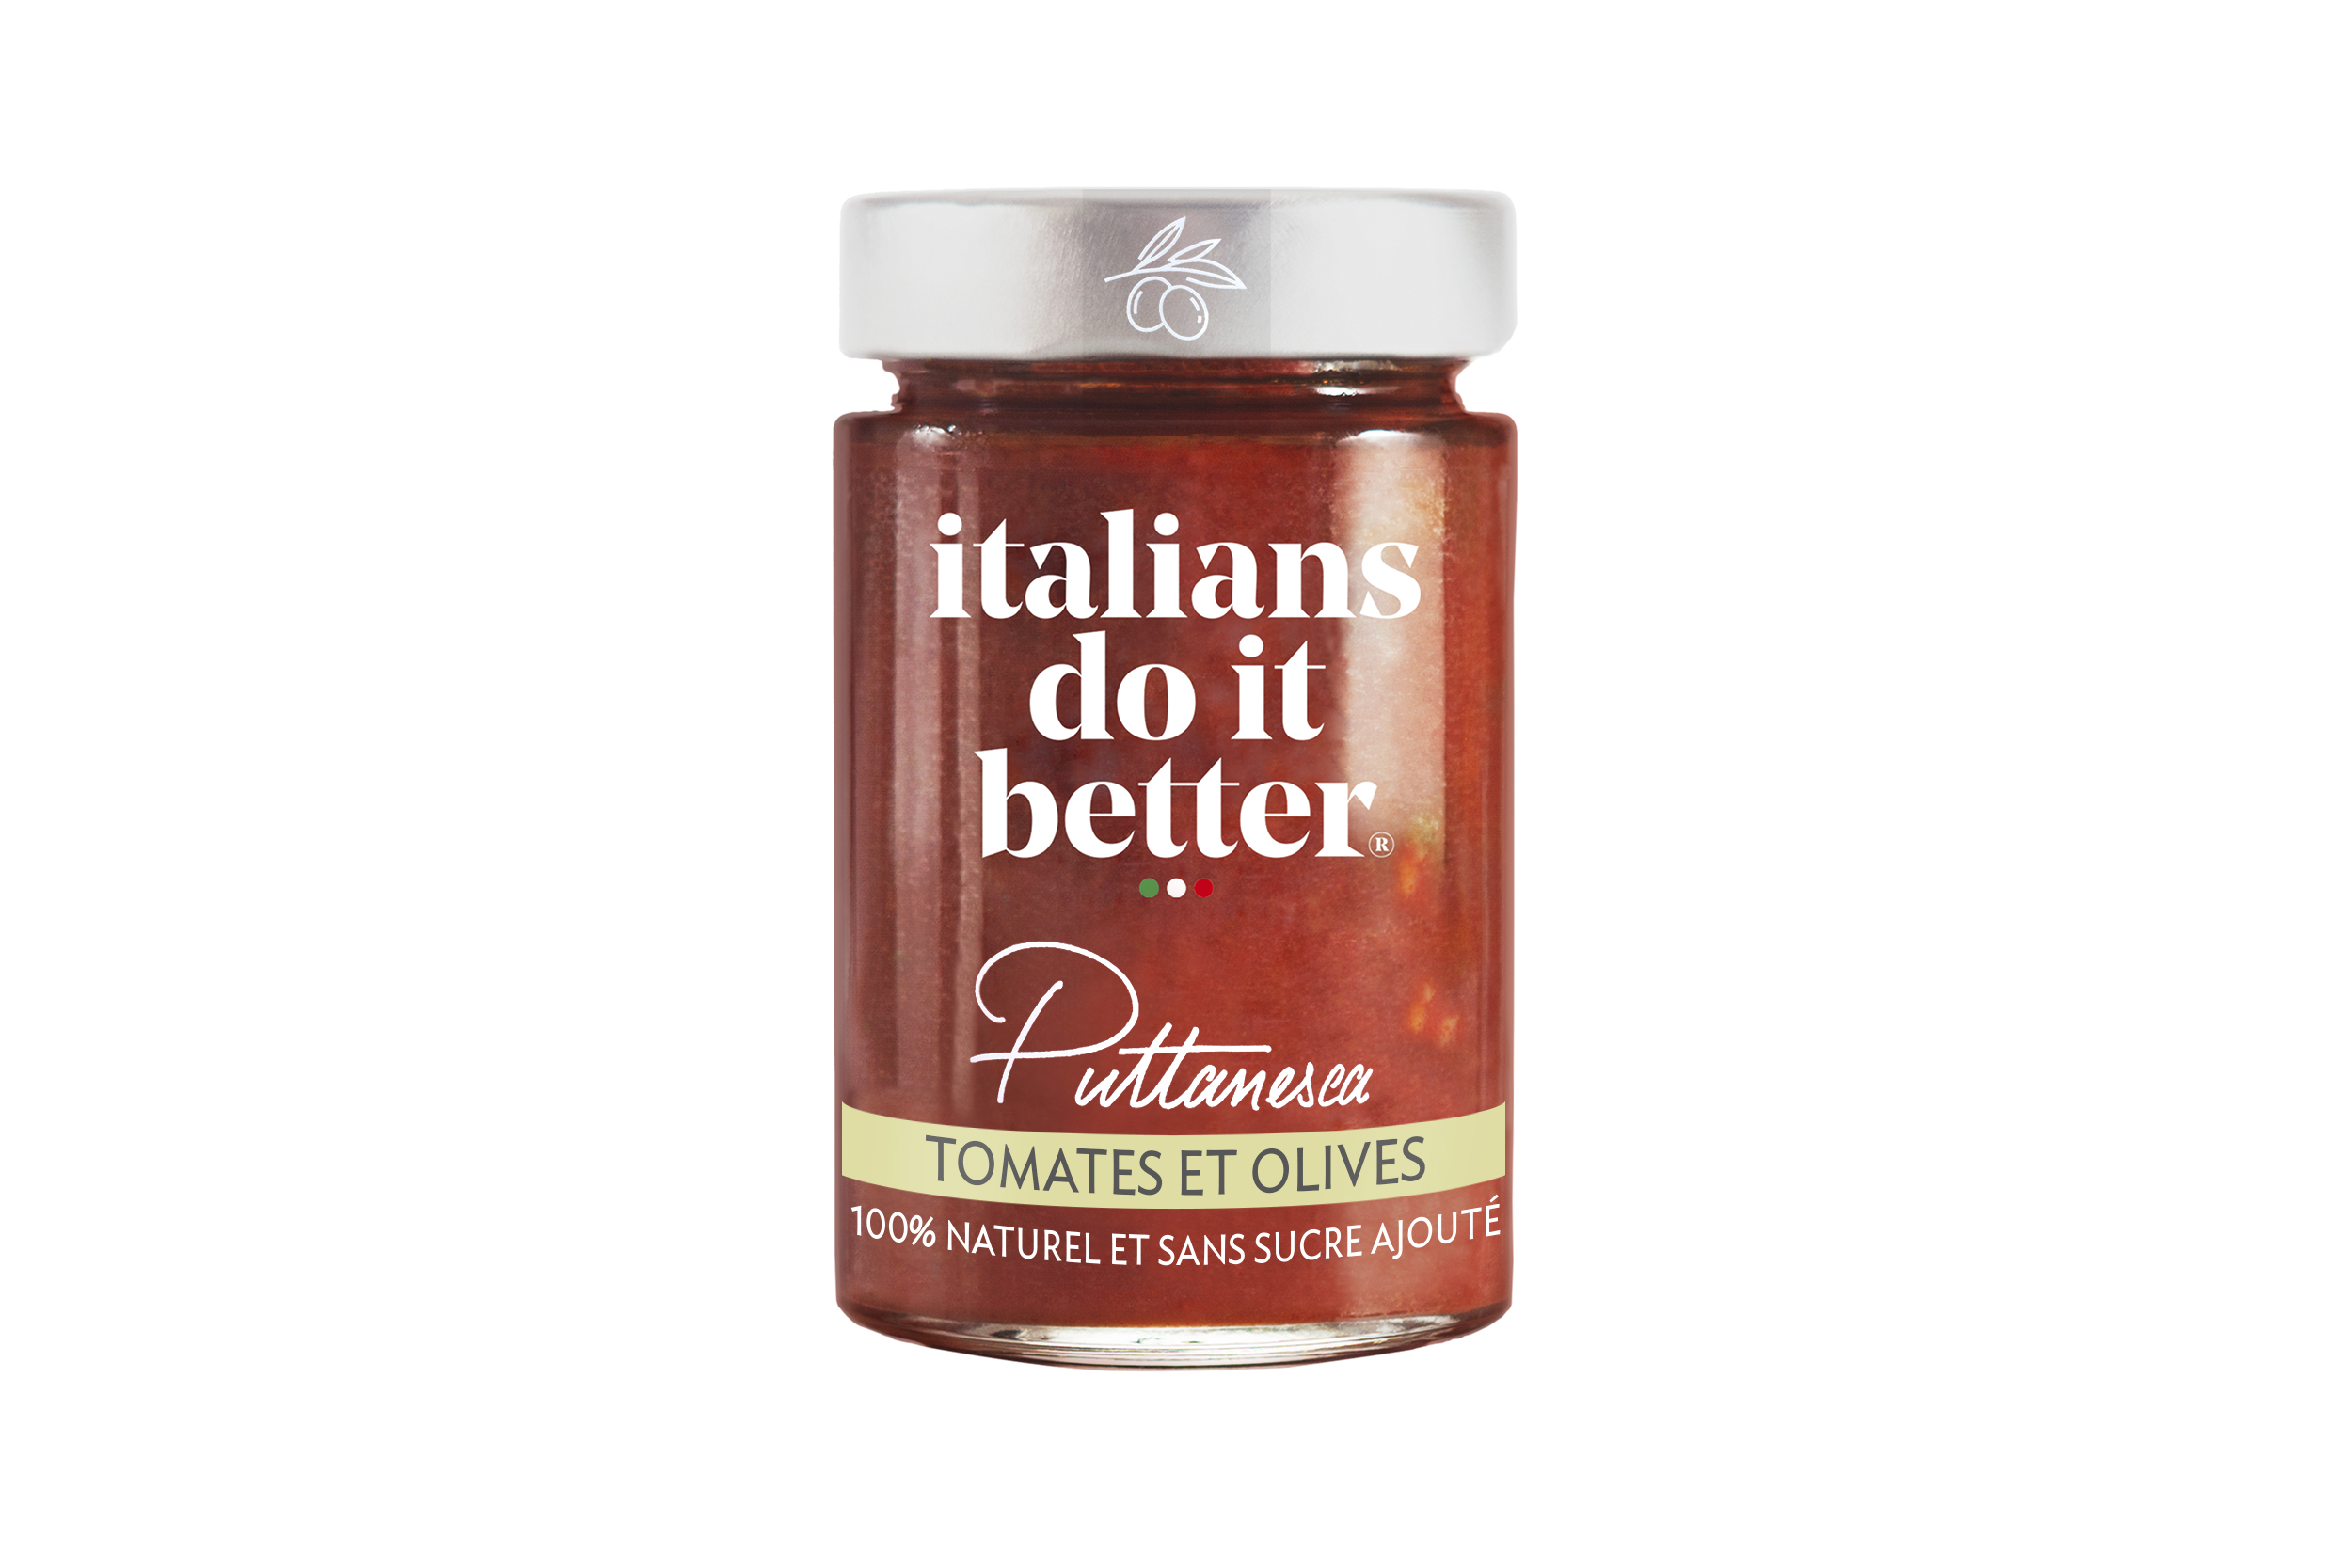 Puttanesca   Tomatoes (87%), Olives (8%), Extra Virgin Olive Oil, Salt, Capers, Garlic, Chili, Basil.  This recipe with character was born on the island of Ischia. Legend has it that its aroma excited Neapolitan men. A great classic in Italian gastronomy, enjoyed since the 19th century.   How to do it better :  Cook with  penne rigate or spaghetti.  Sprinkle with Parmigiano Reggiano.